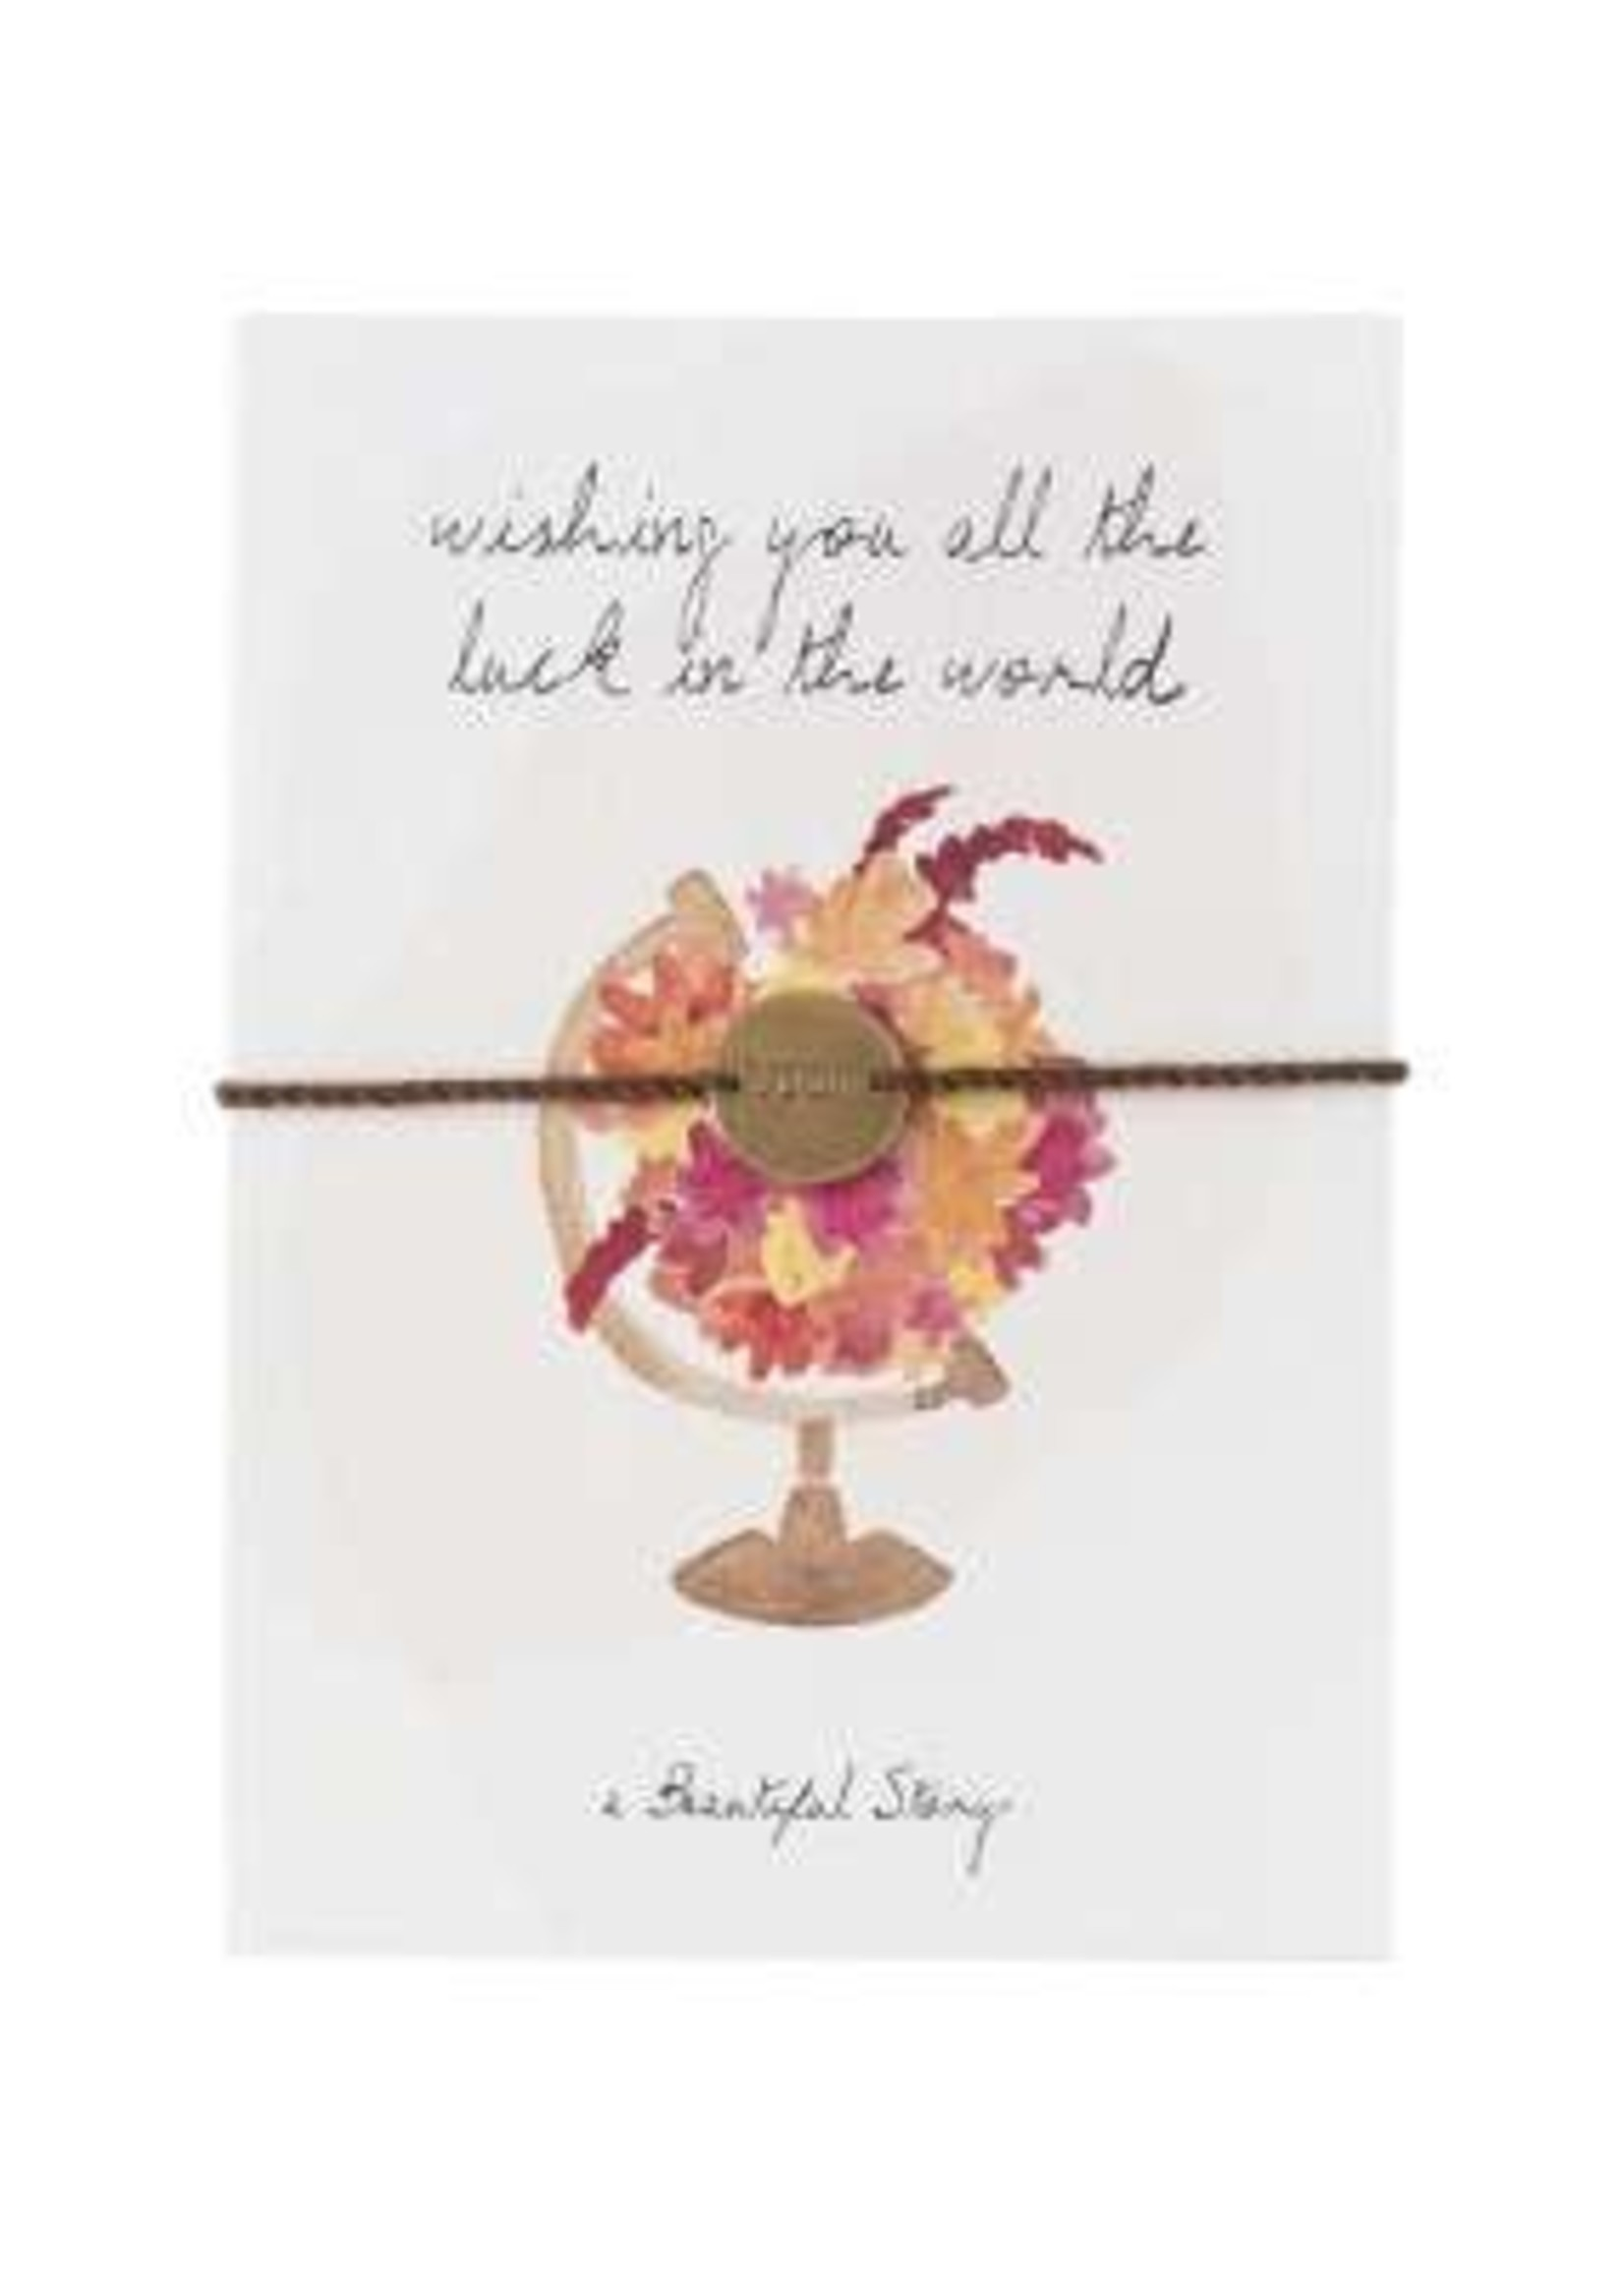 A Beautiful Story Jewelry Postcard World - wishing you all the luck in the world